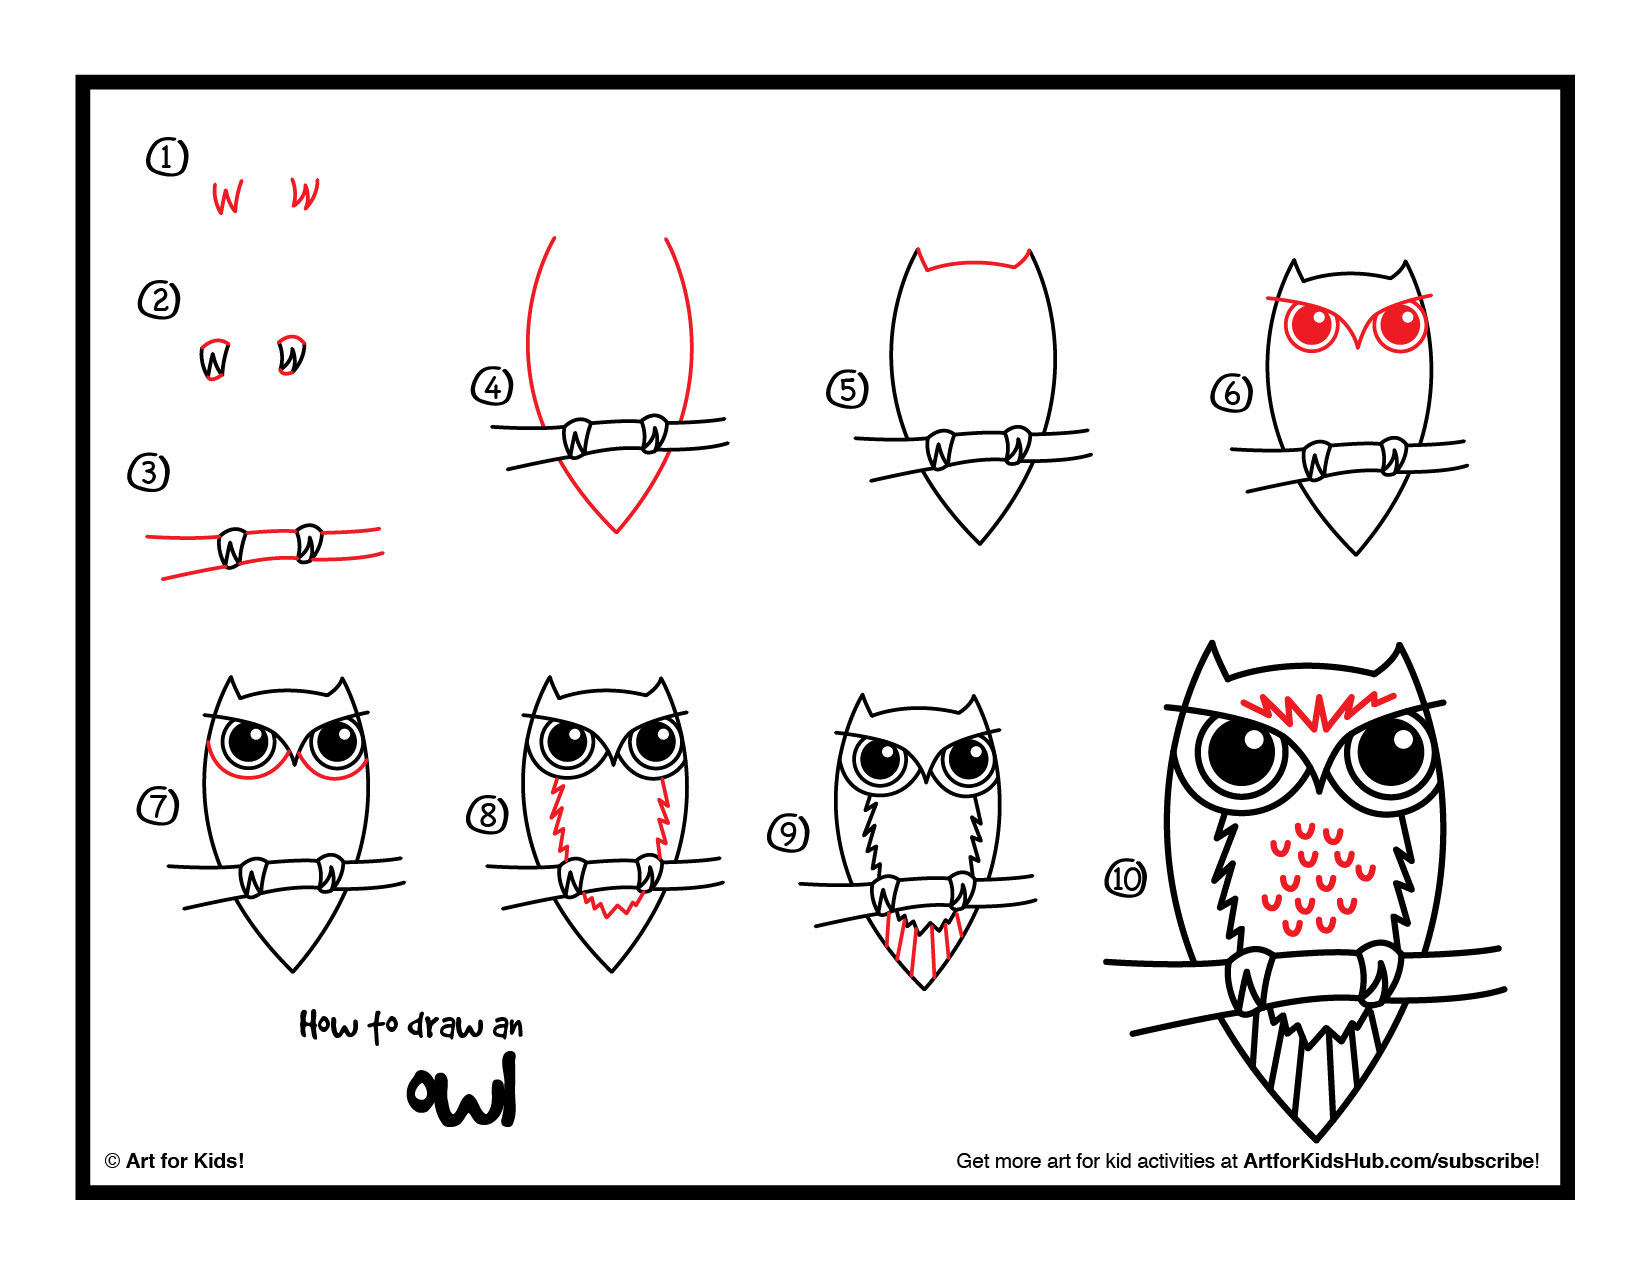 Video how to draw an owl for kids local santa cruz for How to draw a two story house step by step